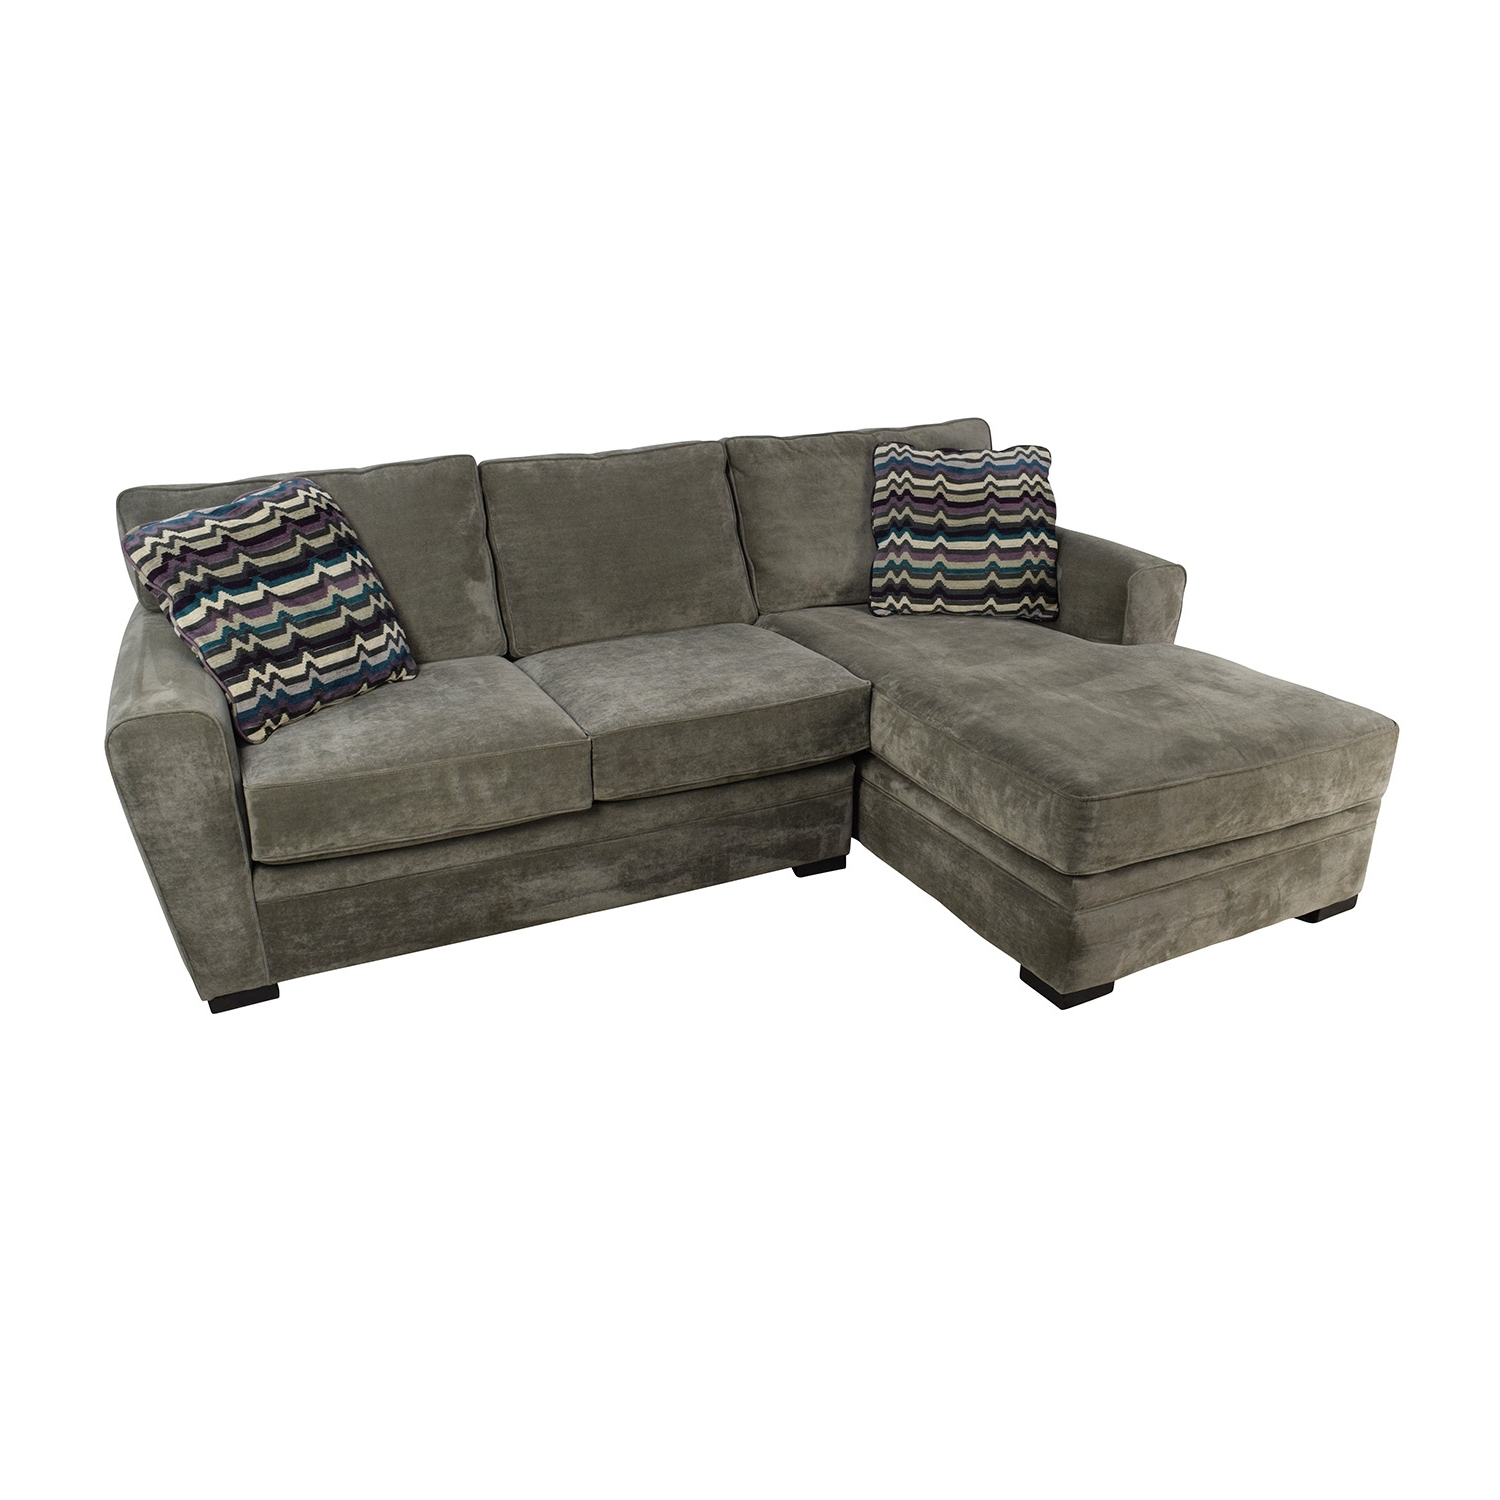 [%52% Off – Raymour & Flanigan Raymour & Flanigan Artemis Ii Inside 2019 Raymour And Flanigan Sectional Sofas|Raymour And Flanigan Sectional Sofas Within Preferred 52% Off – Raymour & Flanigan Raymour & Flanigan Artemis Ii|Favorite Raymour And Flanigan Sectional Sofas Intended For 52% Off – Raymour & Flanigan Raymour & Flanigan Artemis Ii|Recent 52% Off – Raymour & Flanigan Raymour & Flanigan Artemis Ii Intended For Raymour And Flanigan Sectional Sofas%] (View 3 of 20)